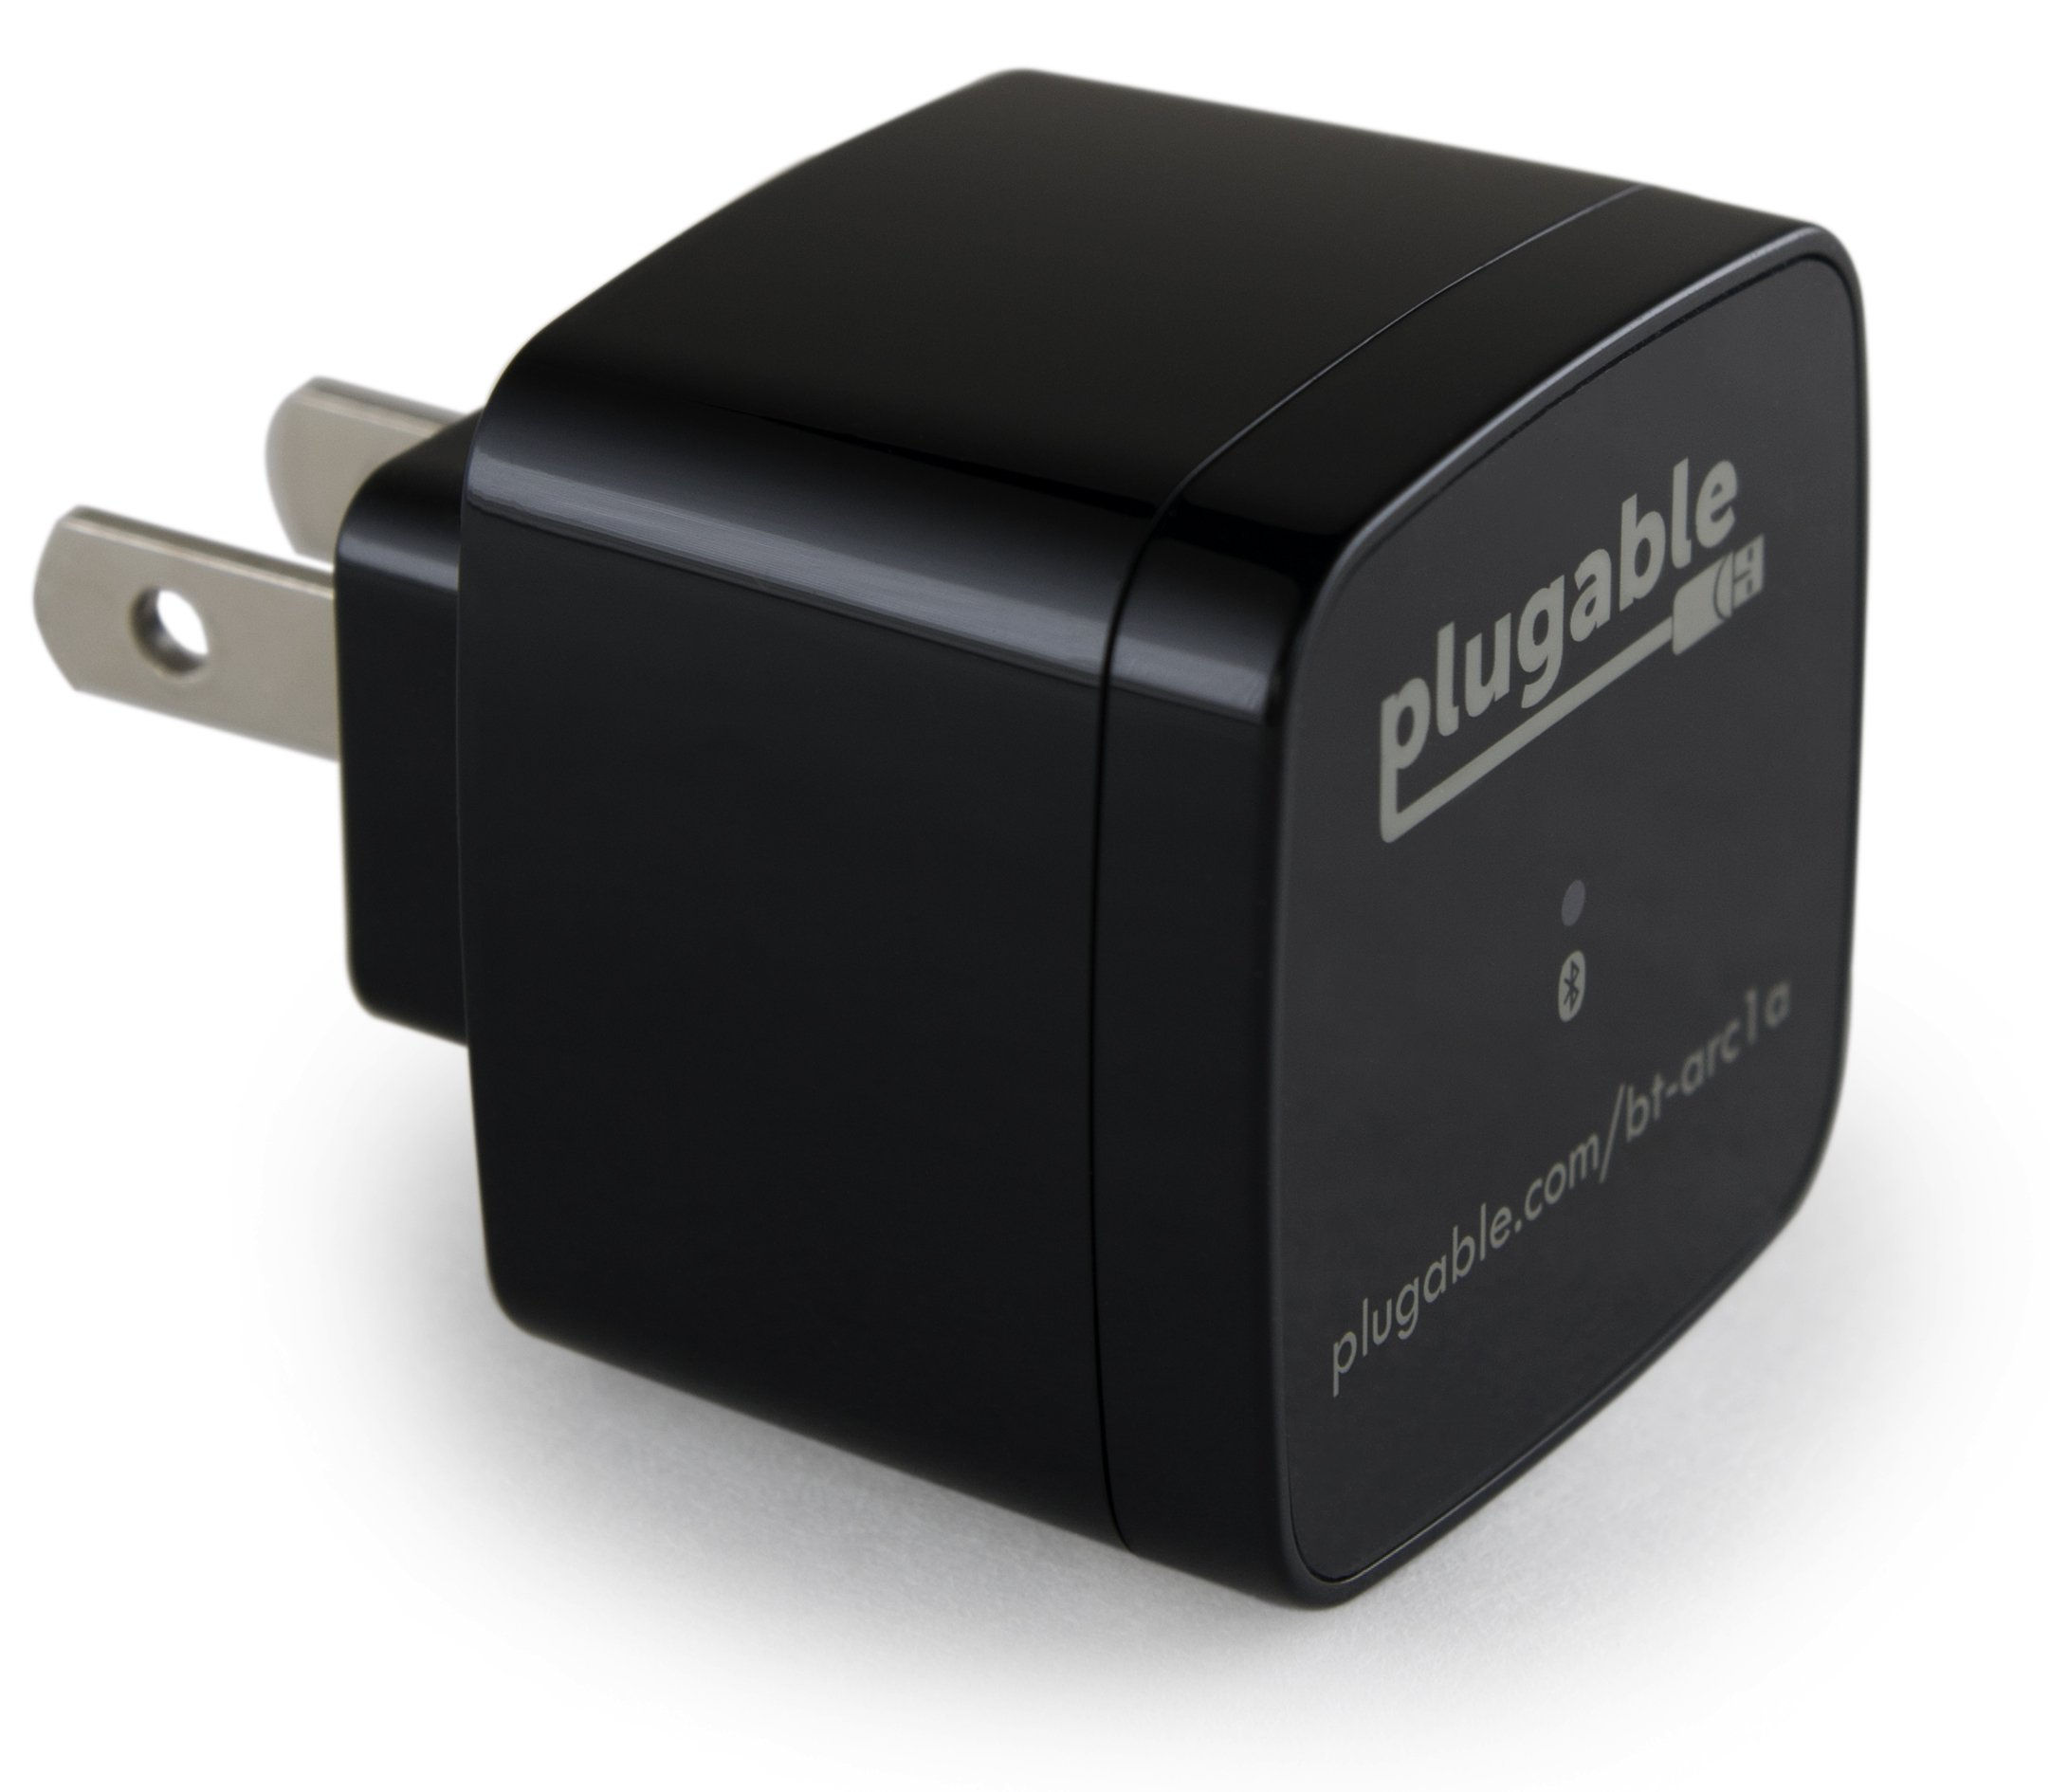 Plugable Bluetooth Audio Receiver Wireless Music Streaming Windows, OS X, Linux, Android iOS